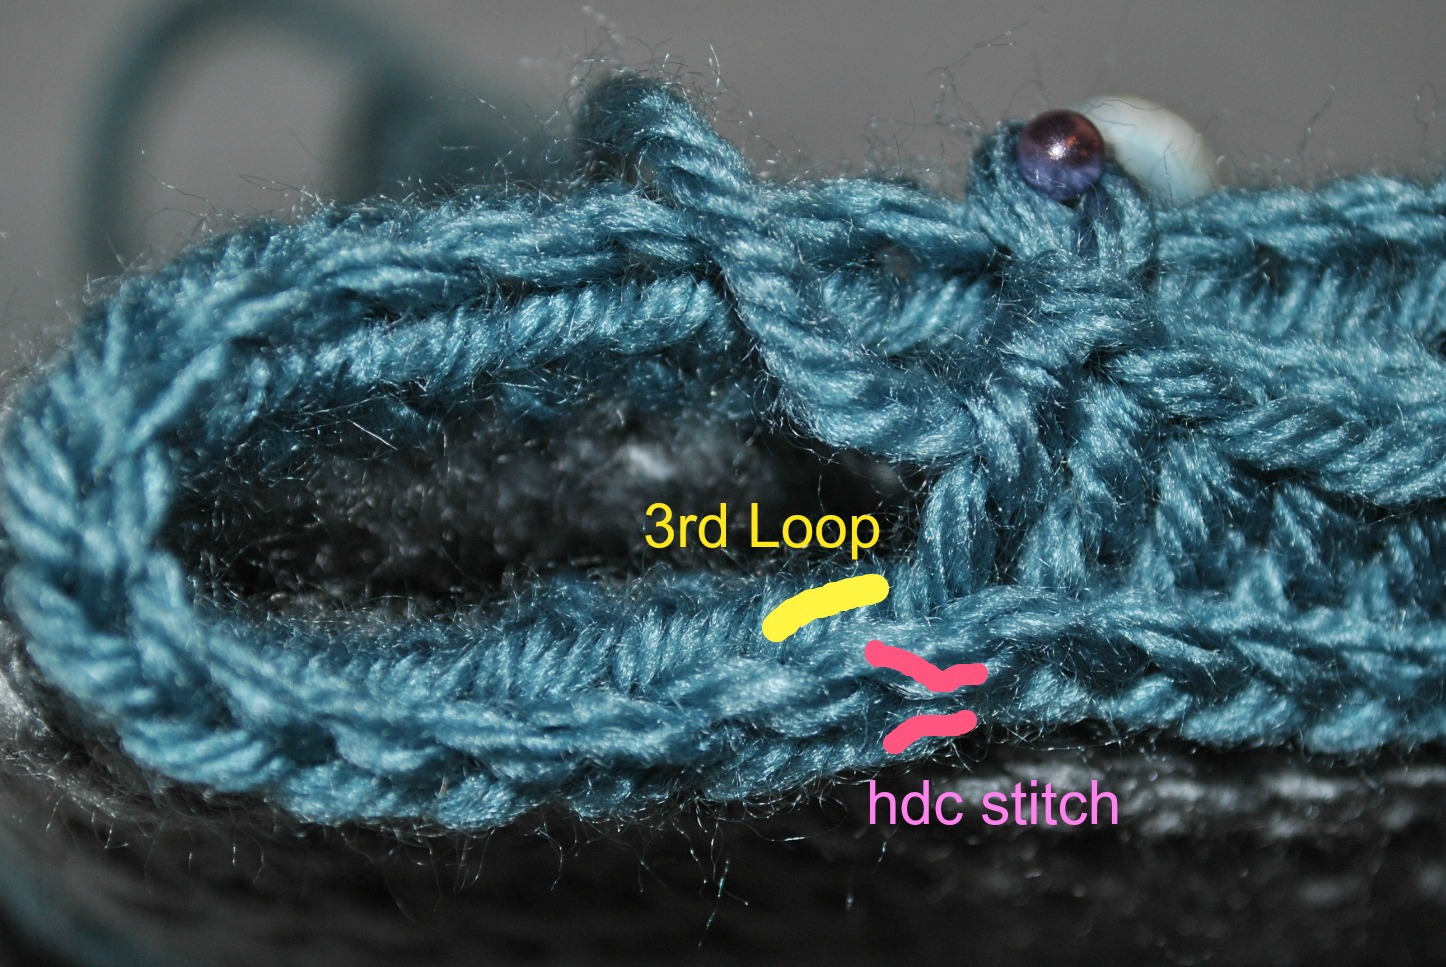 Round 3-27: DO NOT join, hdc in 3rd loop of next stitch. (SEE PHOTO)